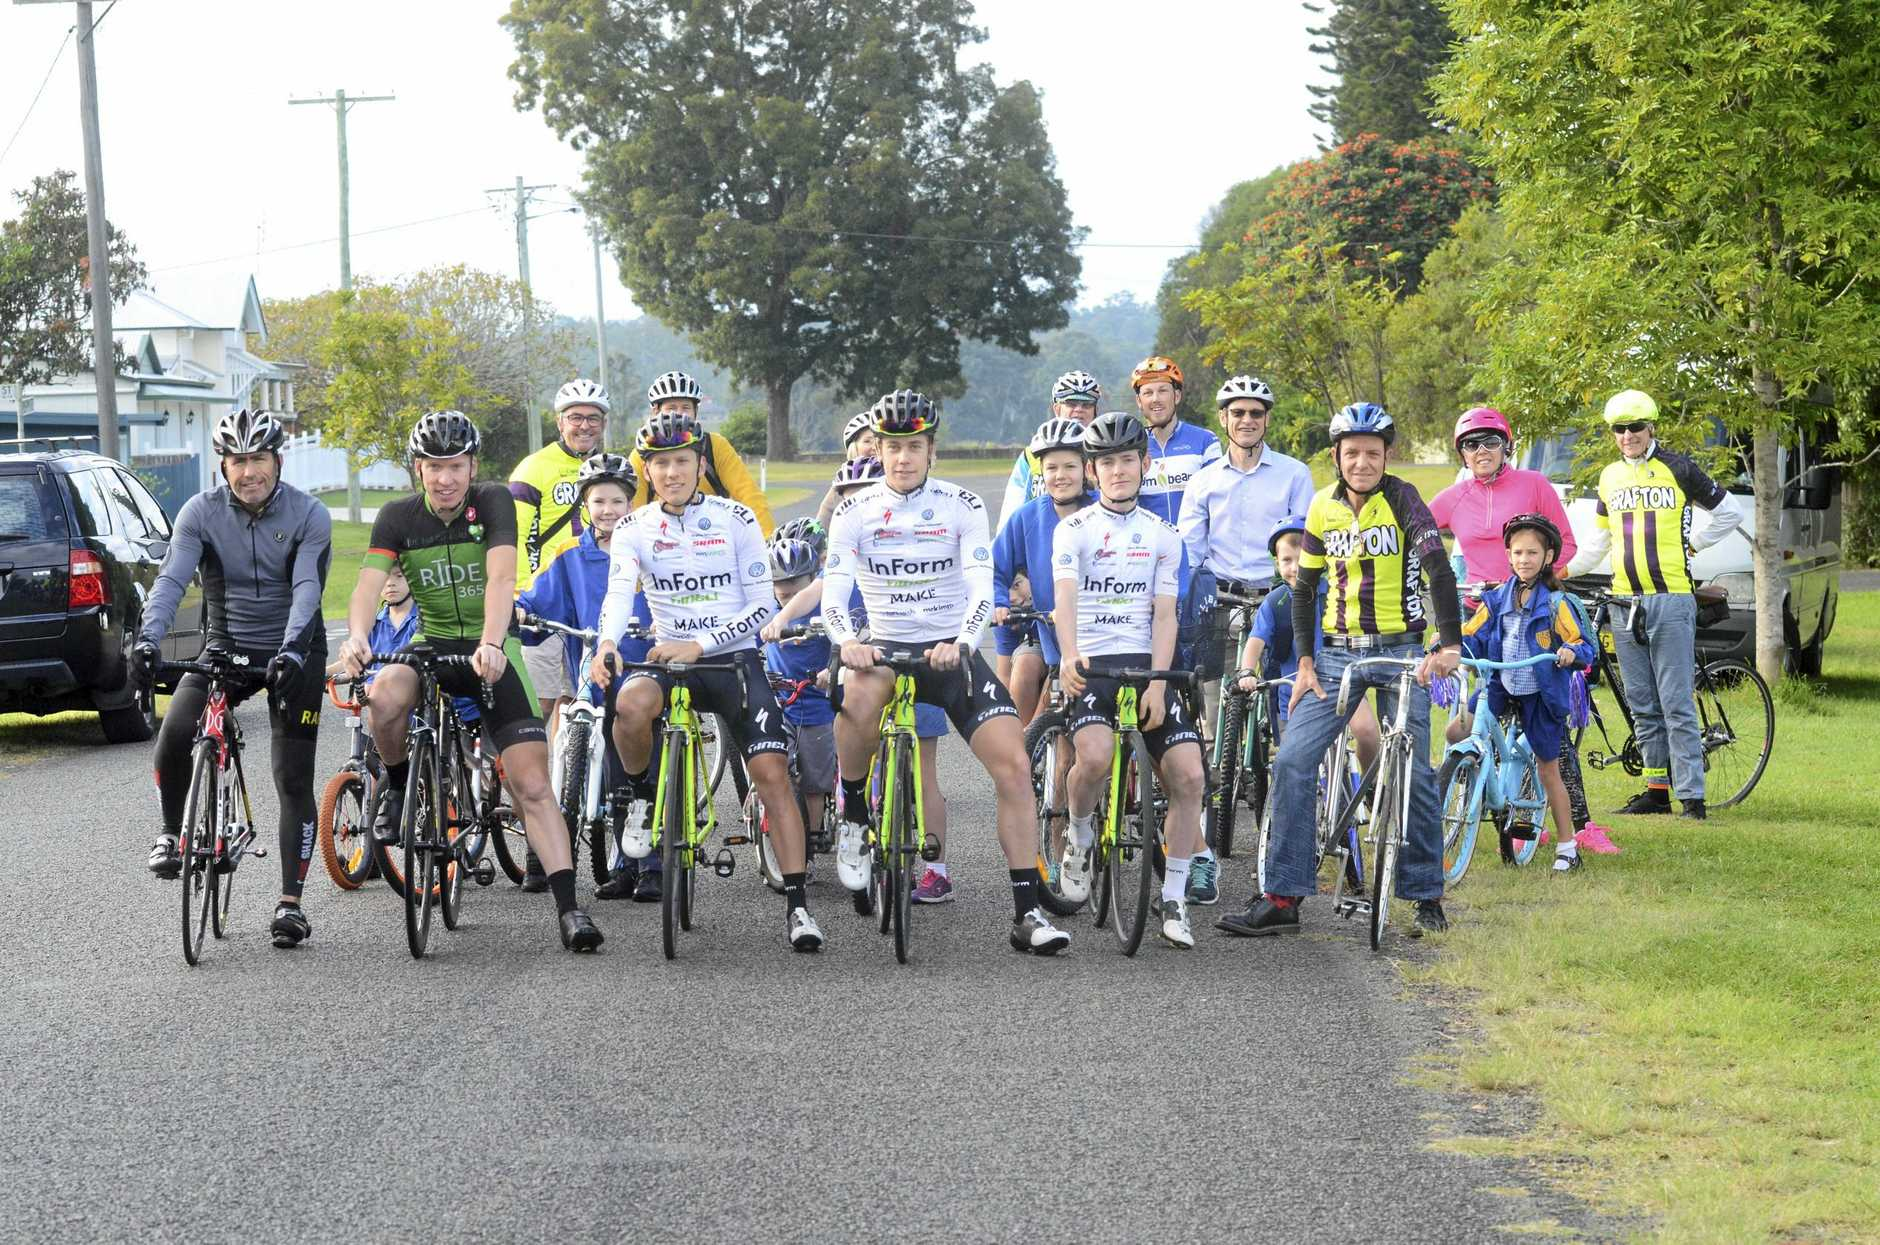 Professional cyclists competing in the Grafton to Inverell Cycle Classic joined Grafton Public School students in their weekly 'Bike Bus' ride to school on Friday, 12th May, 2017.